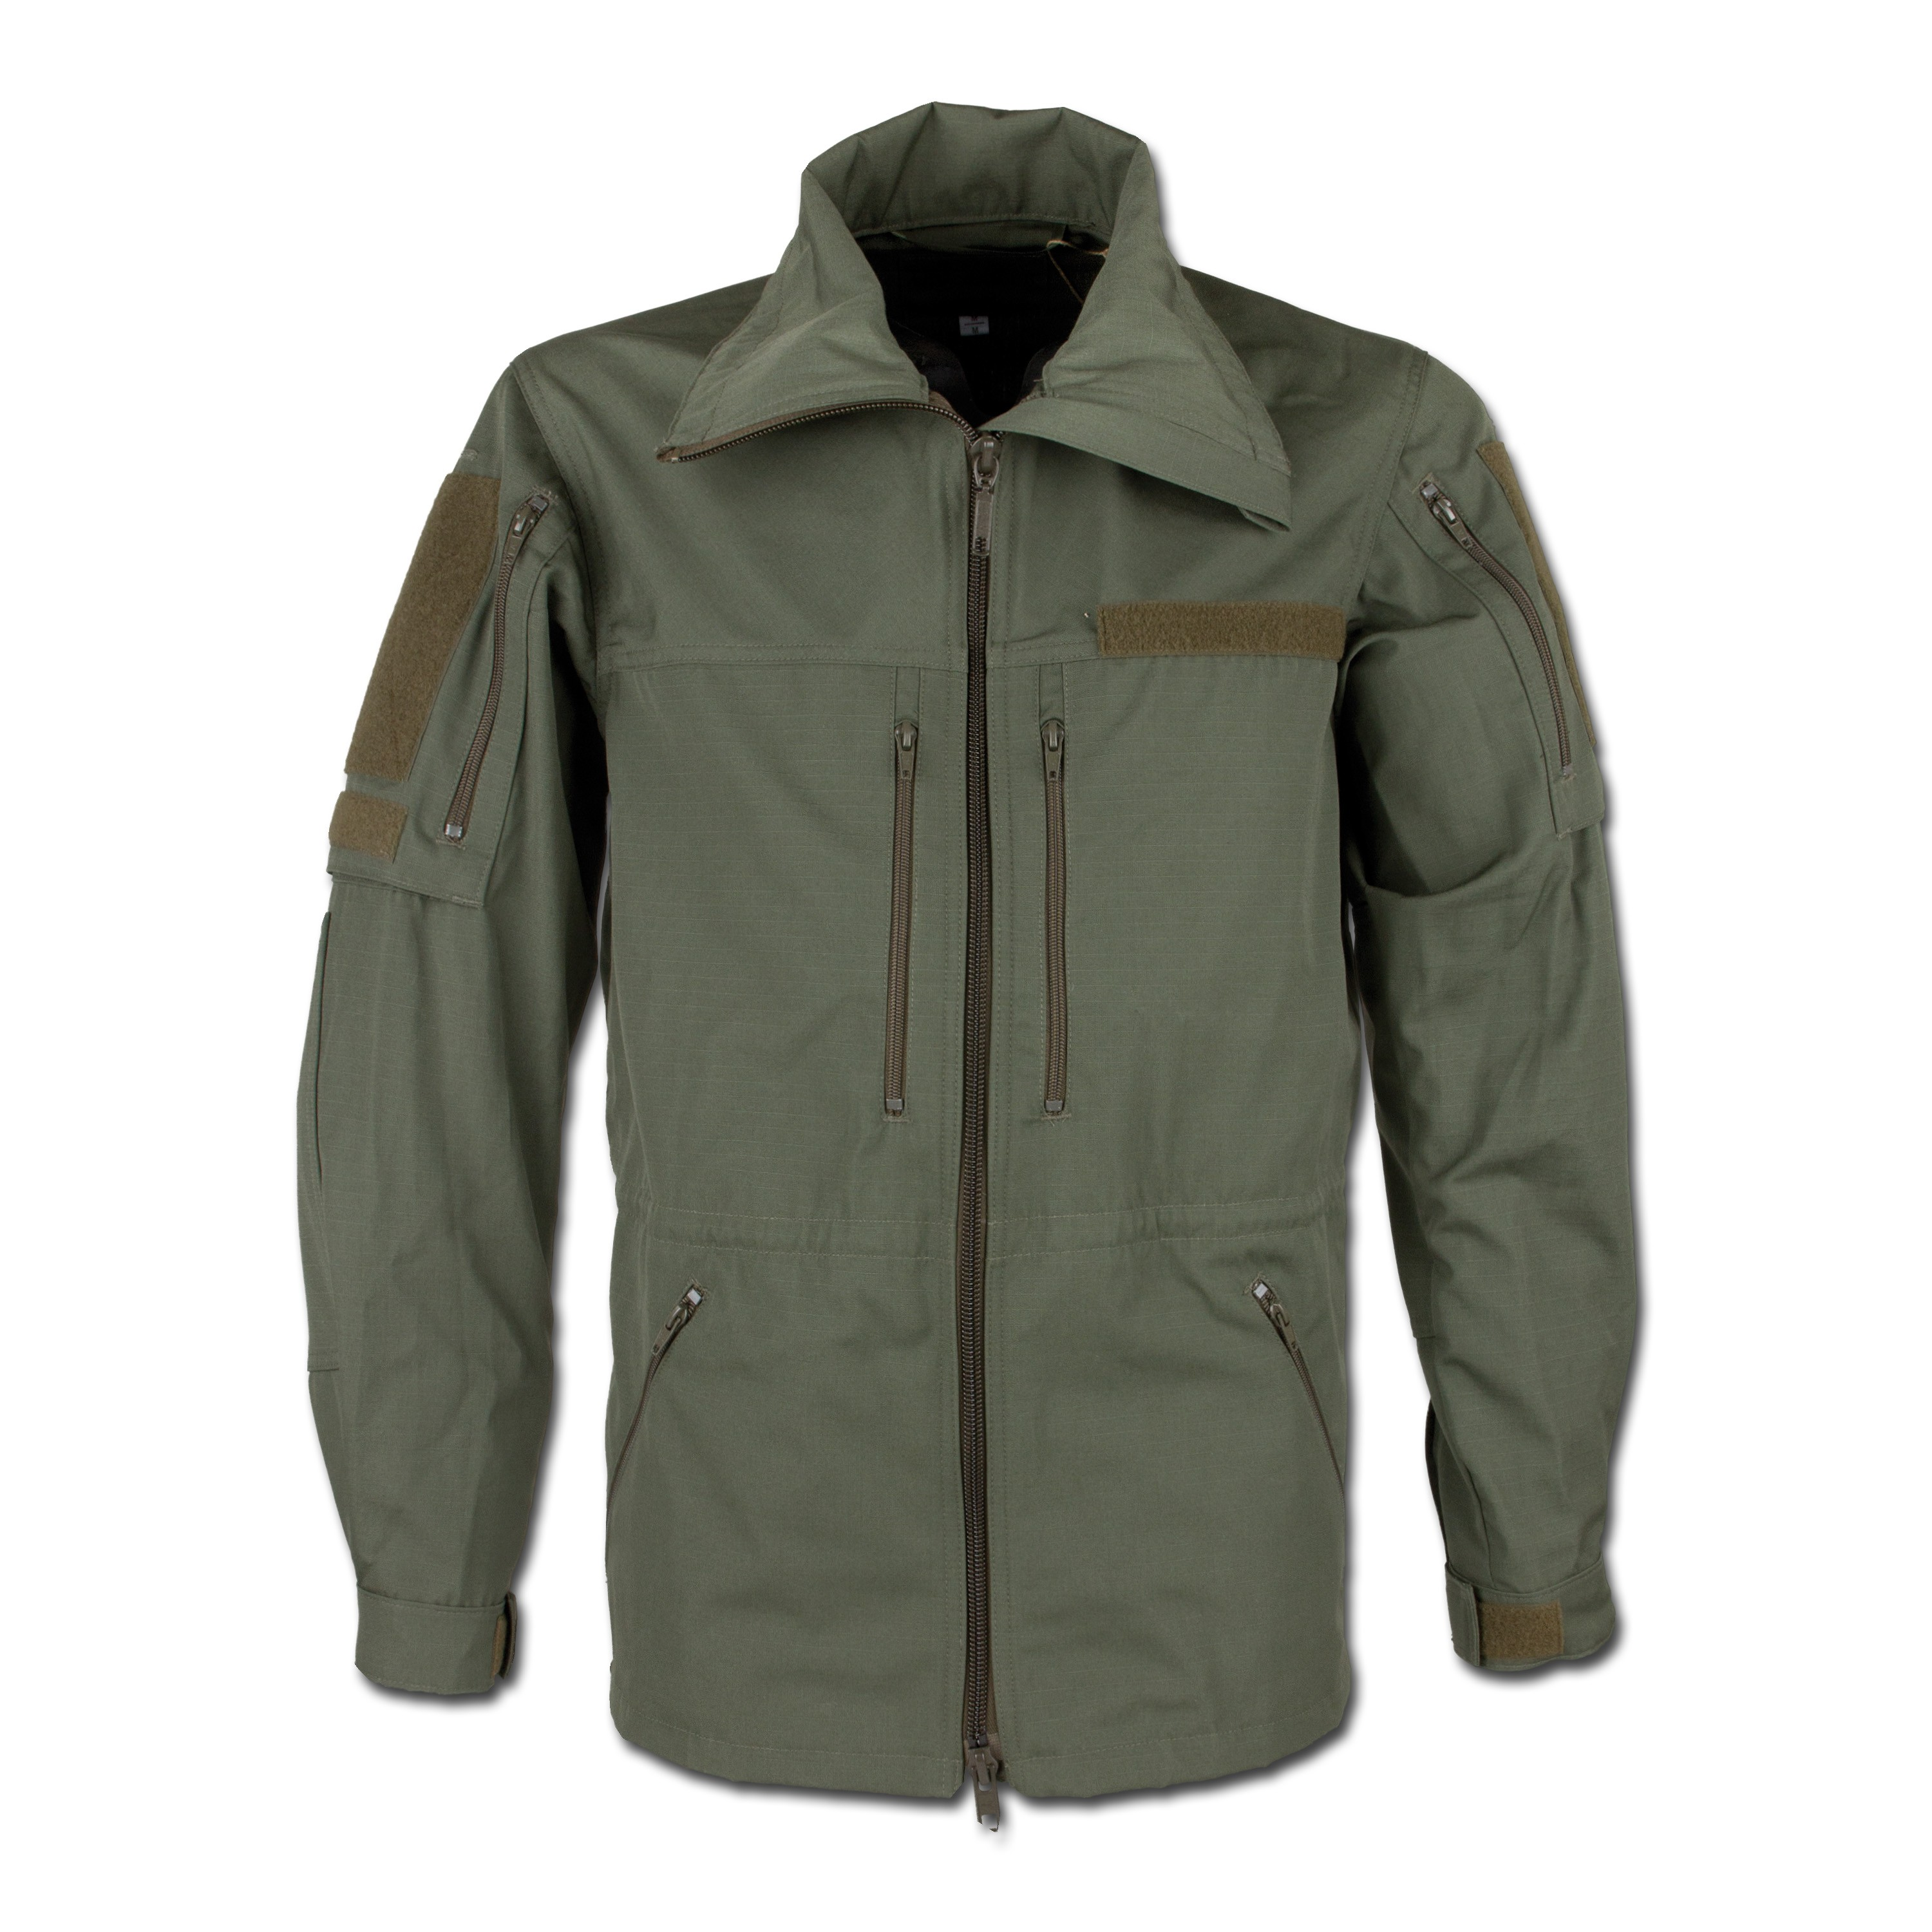 Tactical Jacke LK oliv